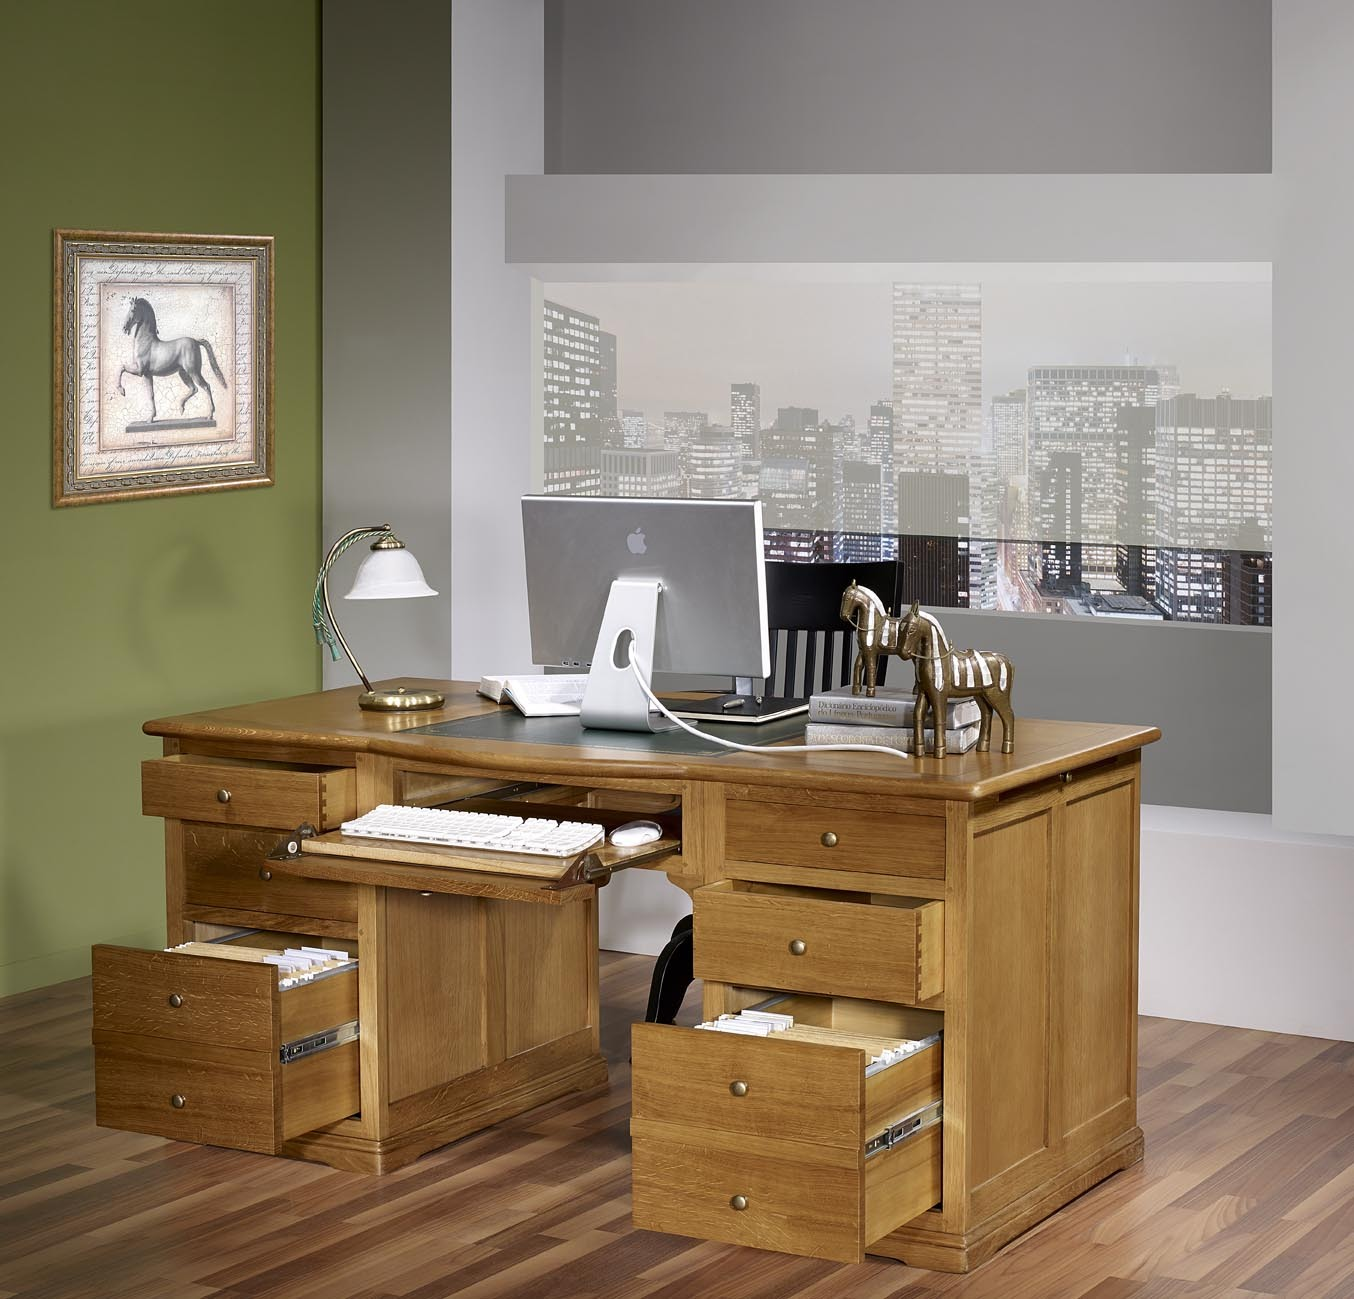 bureau ministre sp cial dossiers suspendus en ch ne massif de style louis philippe meuble en ch ne. Black Bedroom Furniture Sets. Home Design Ideas